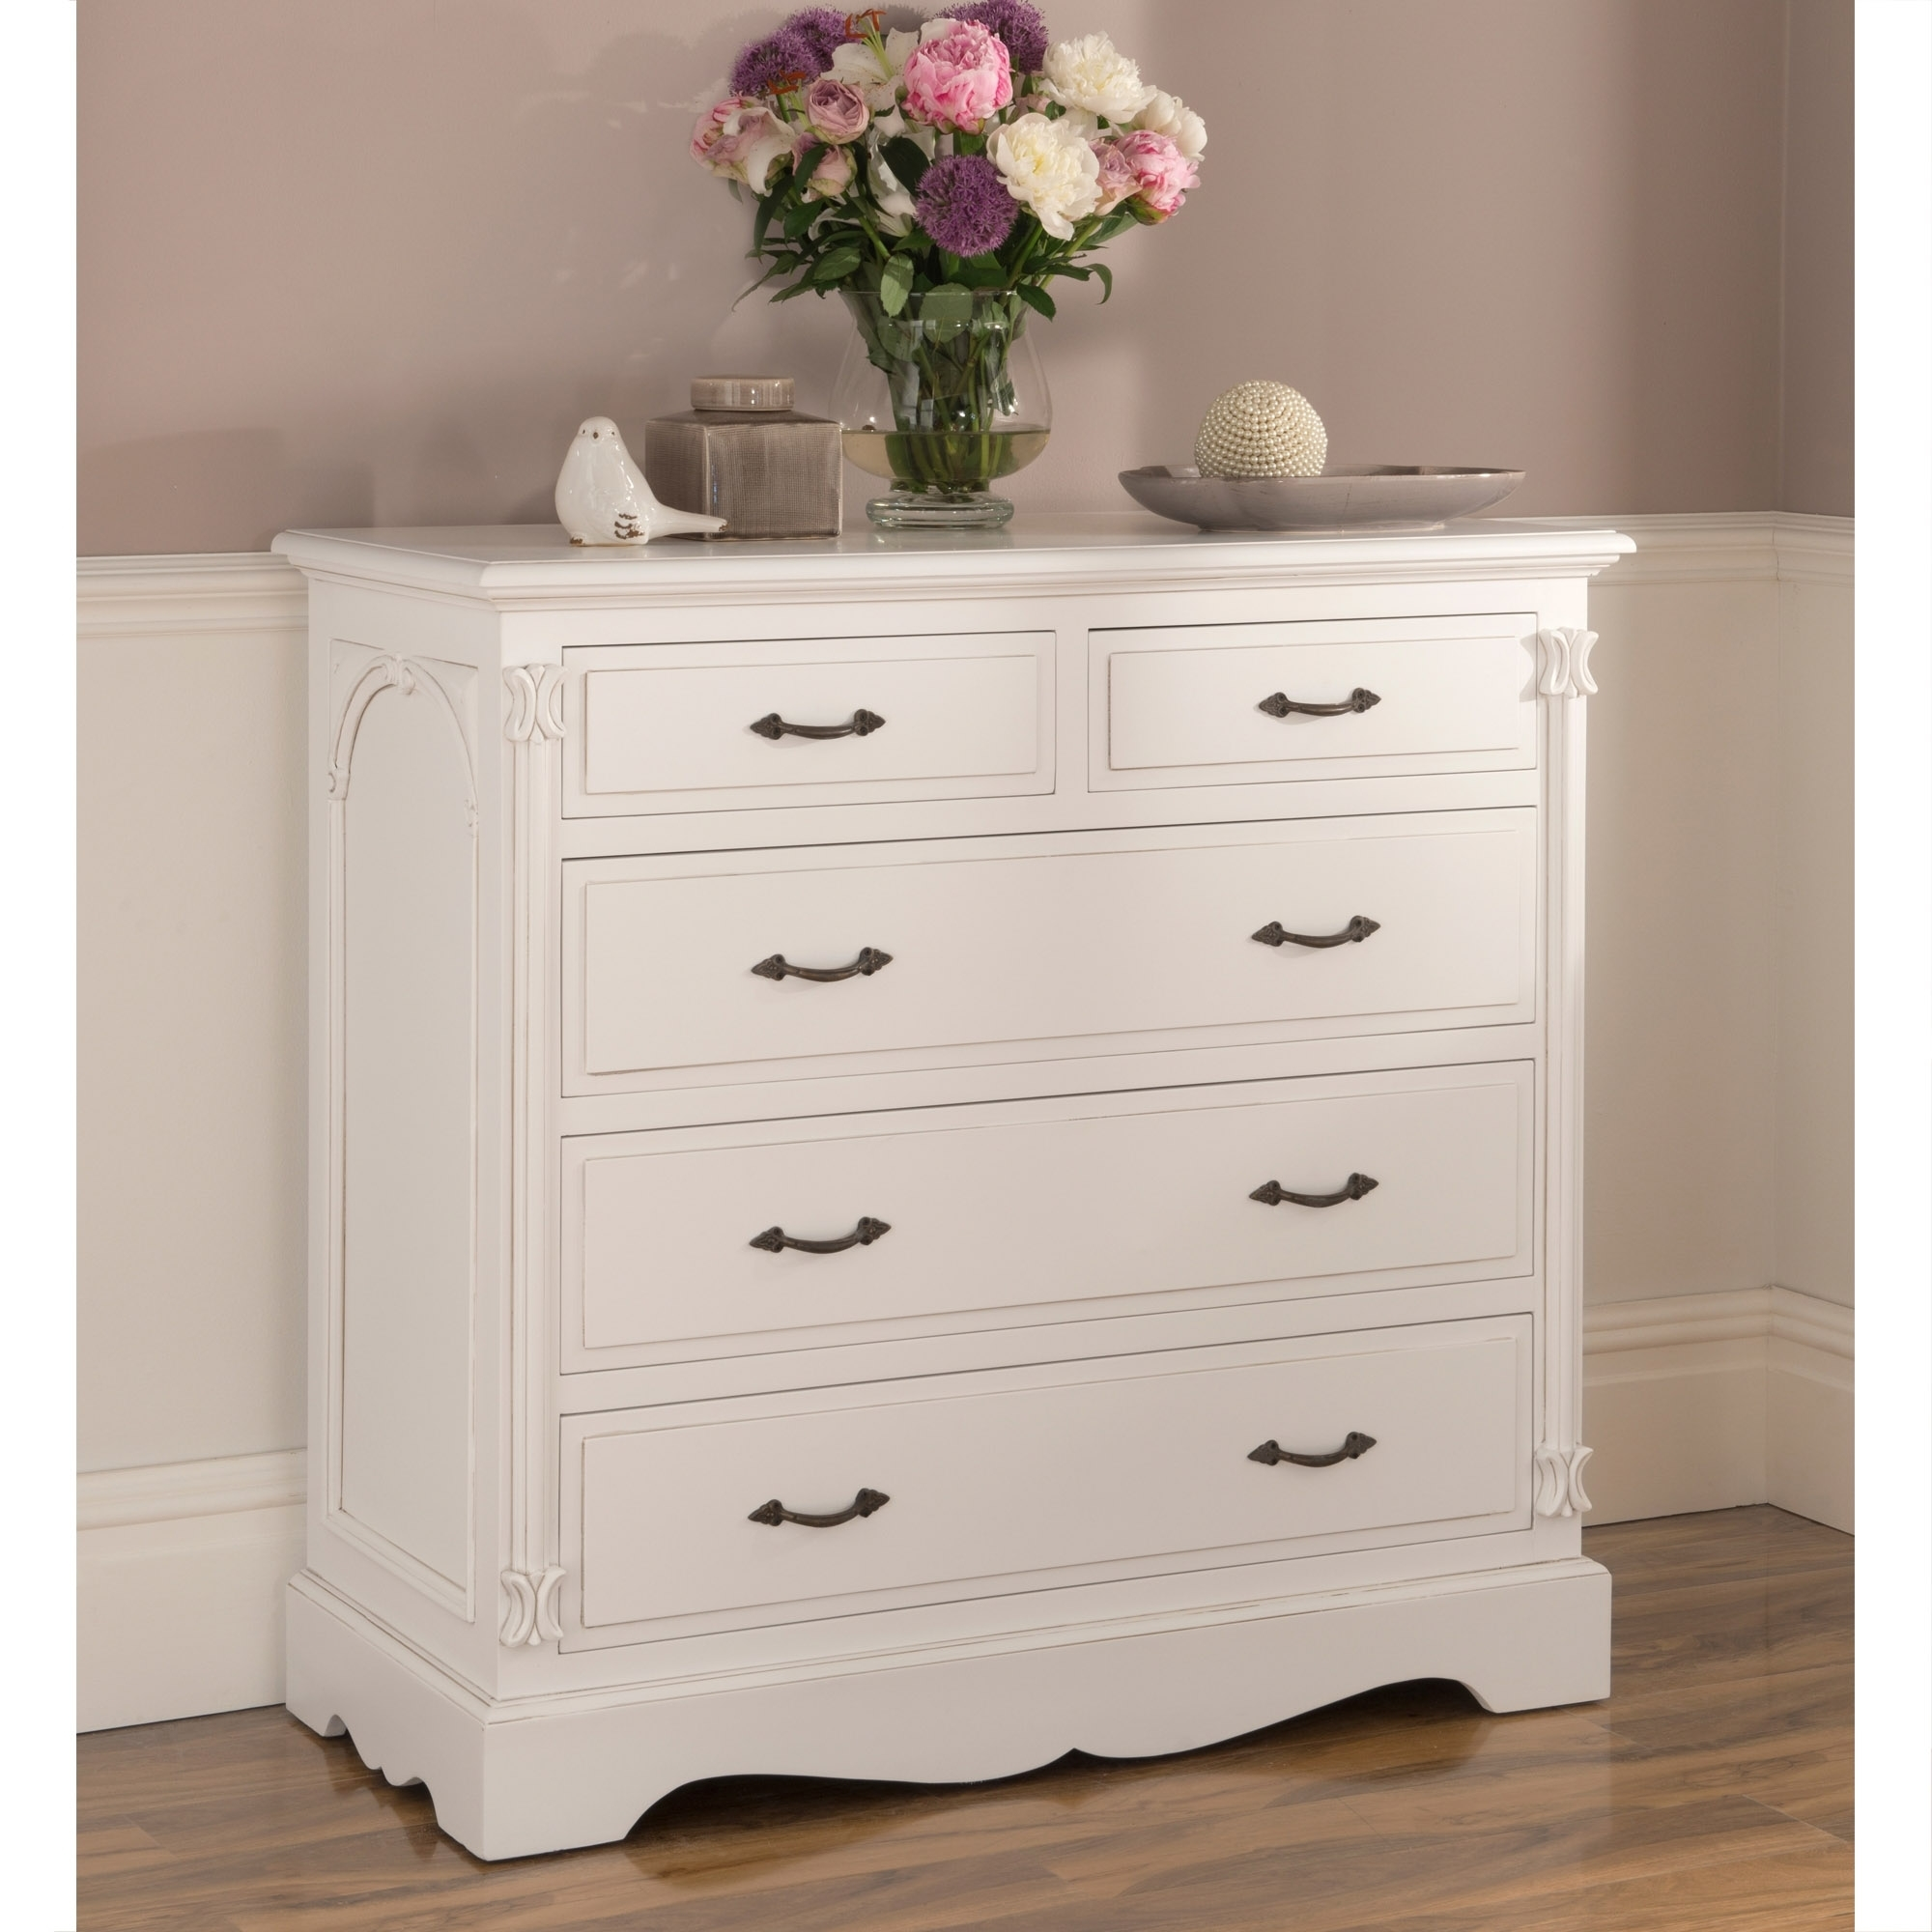 Victorian Antique French Style Chest Of Drawers